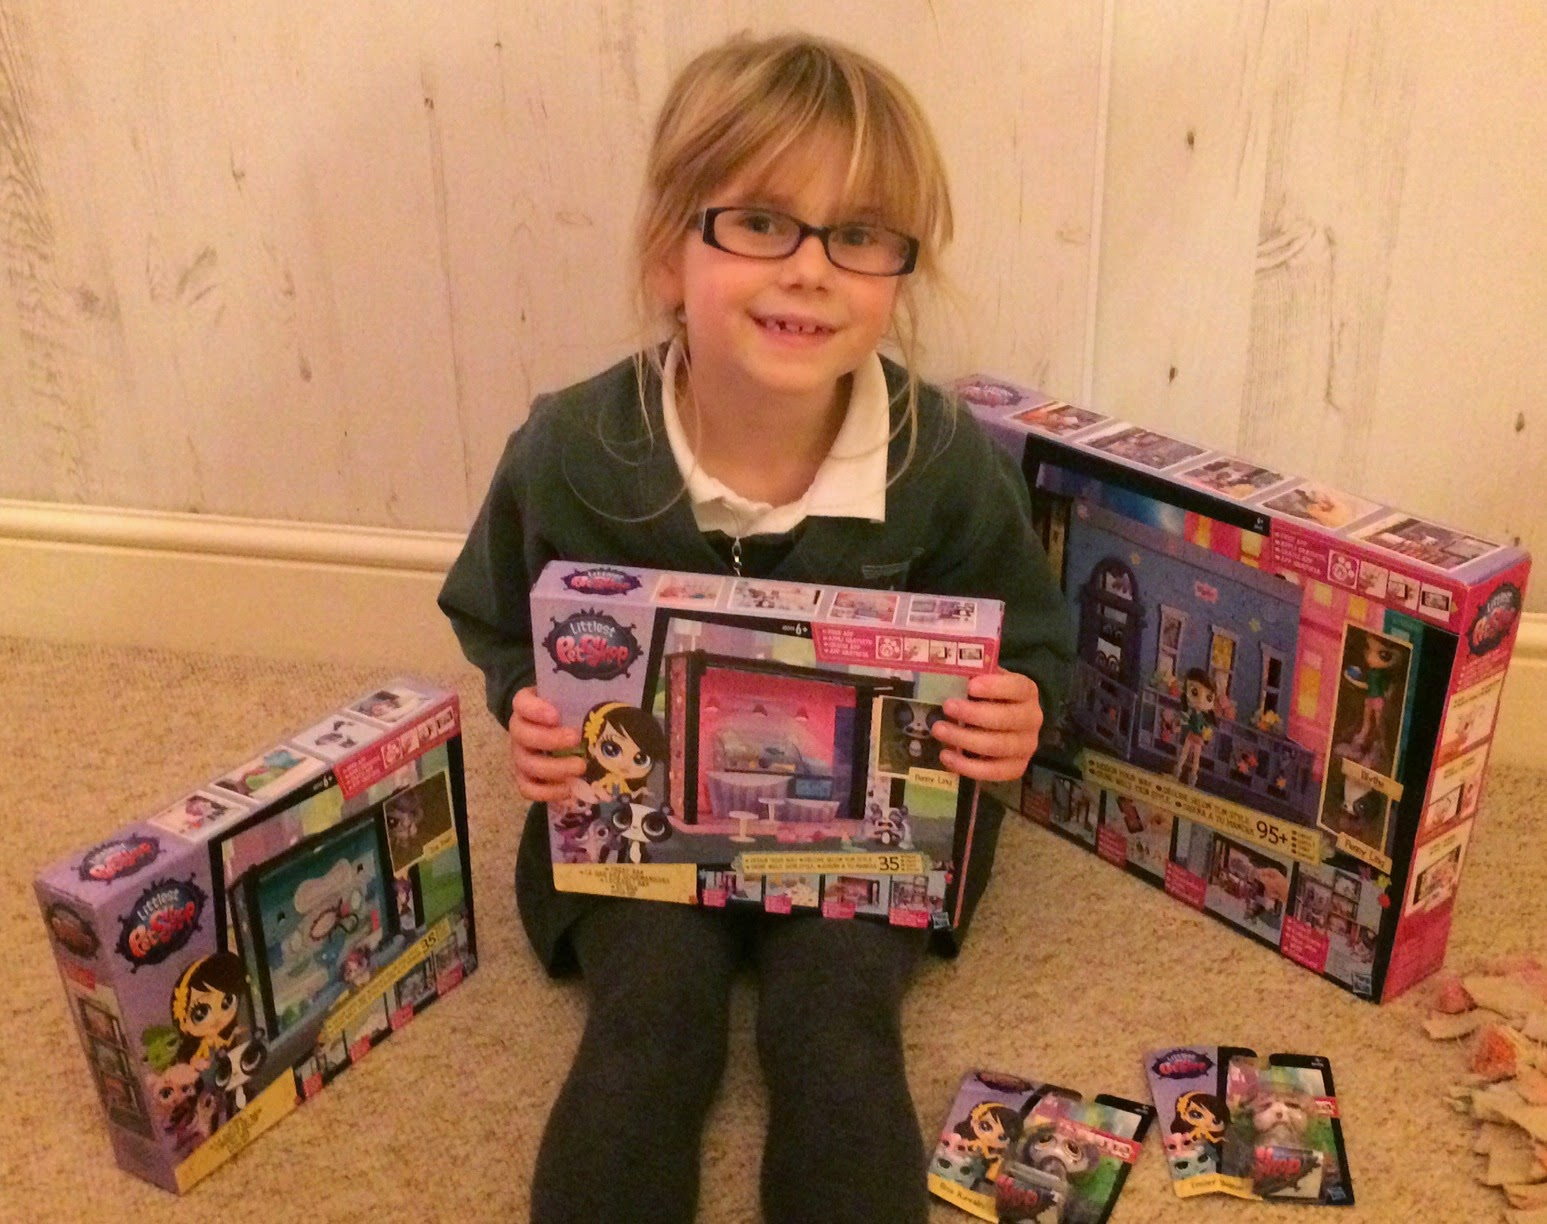 Me And My Shadow Littlest Pet Shop Play Sets Review